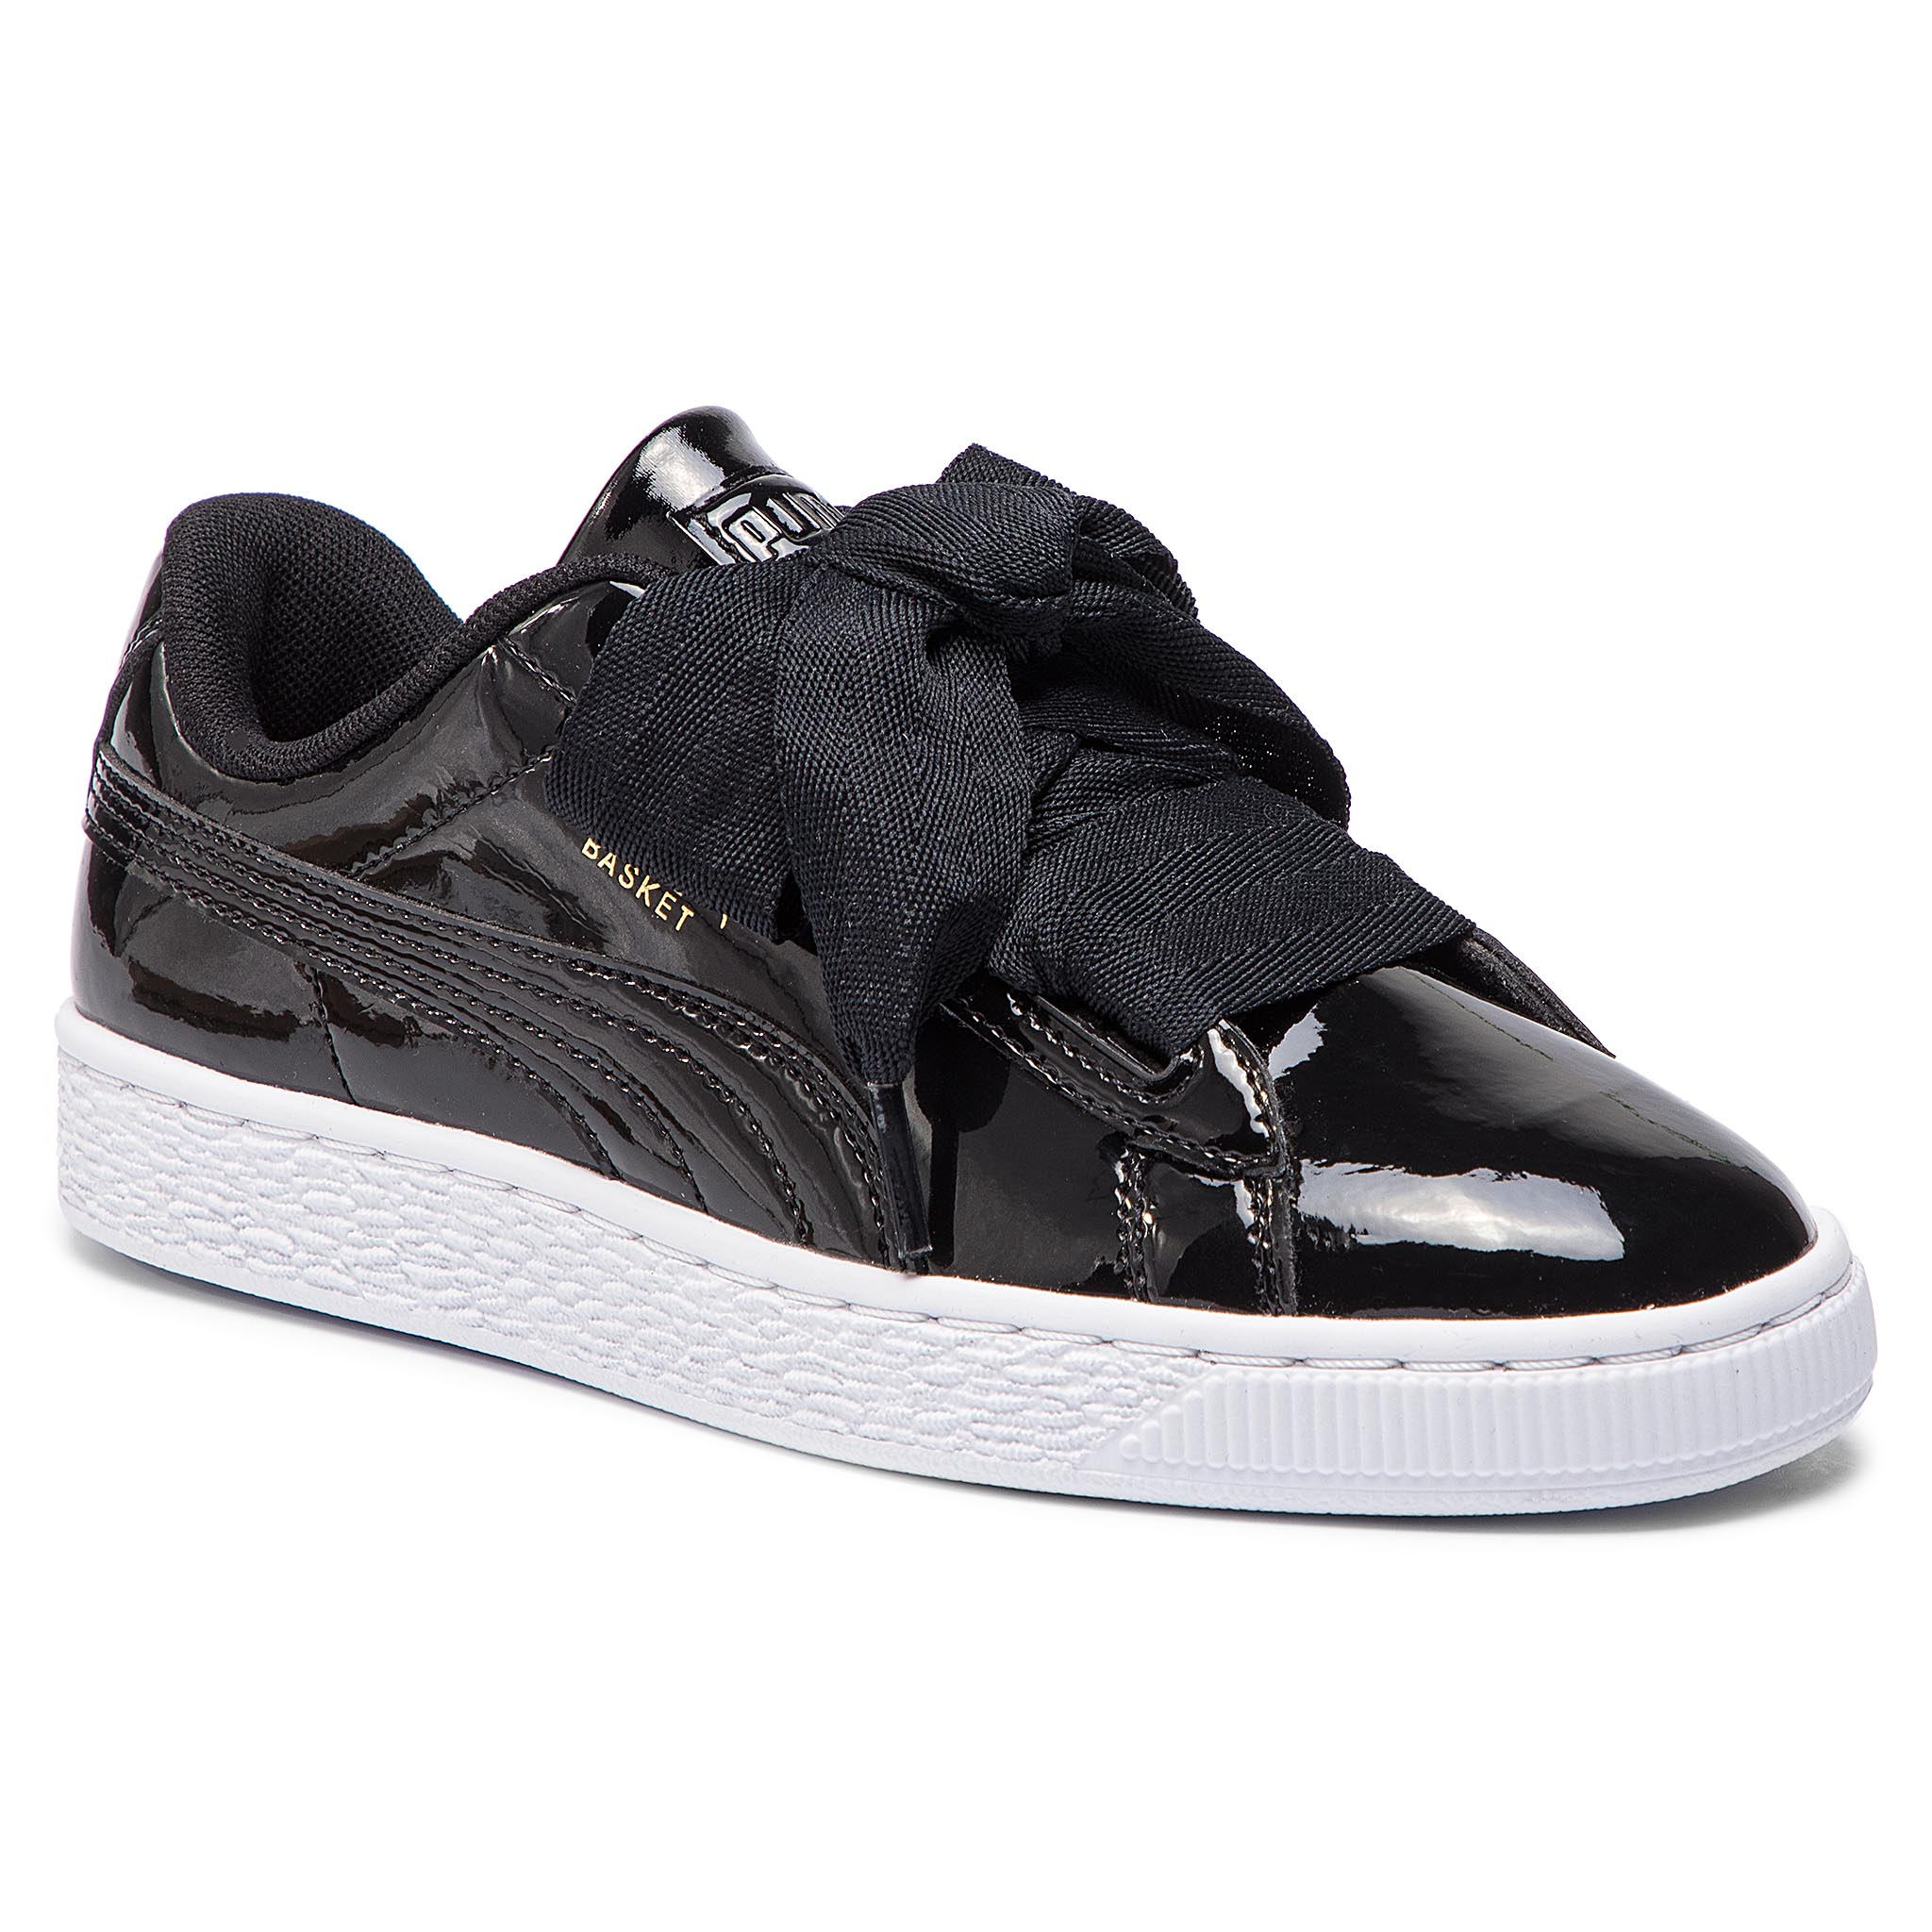 Togoshi 102 Low Sneakers 000079 13 Tg 02 Shoes dCxBoeWr